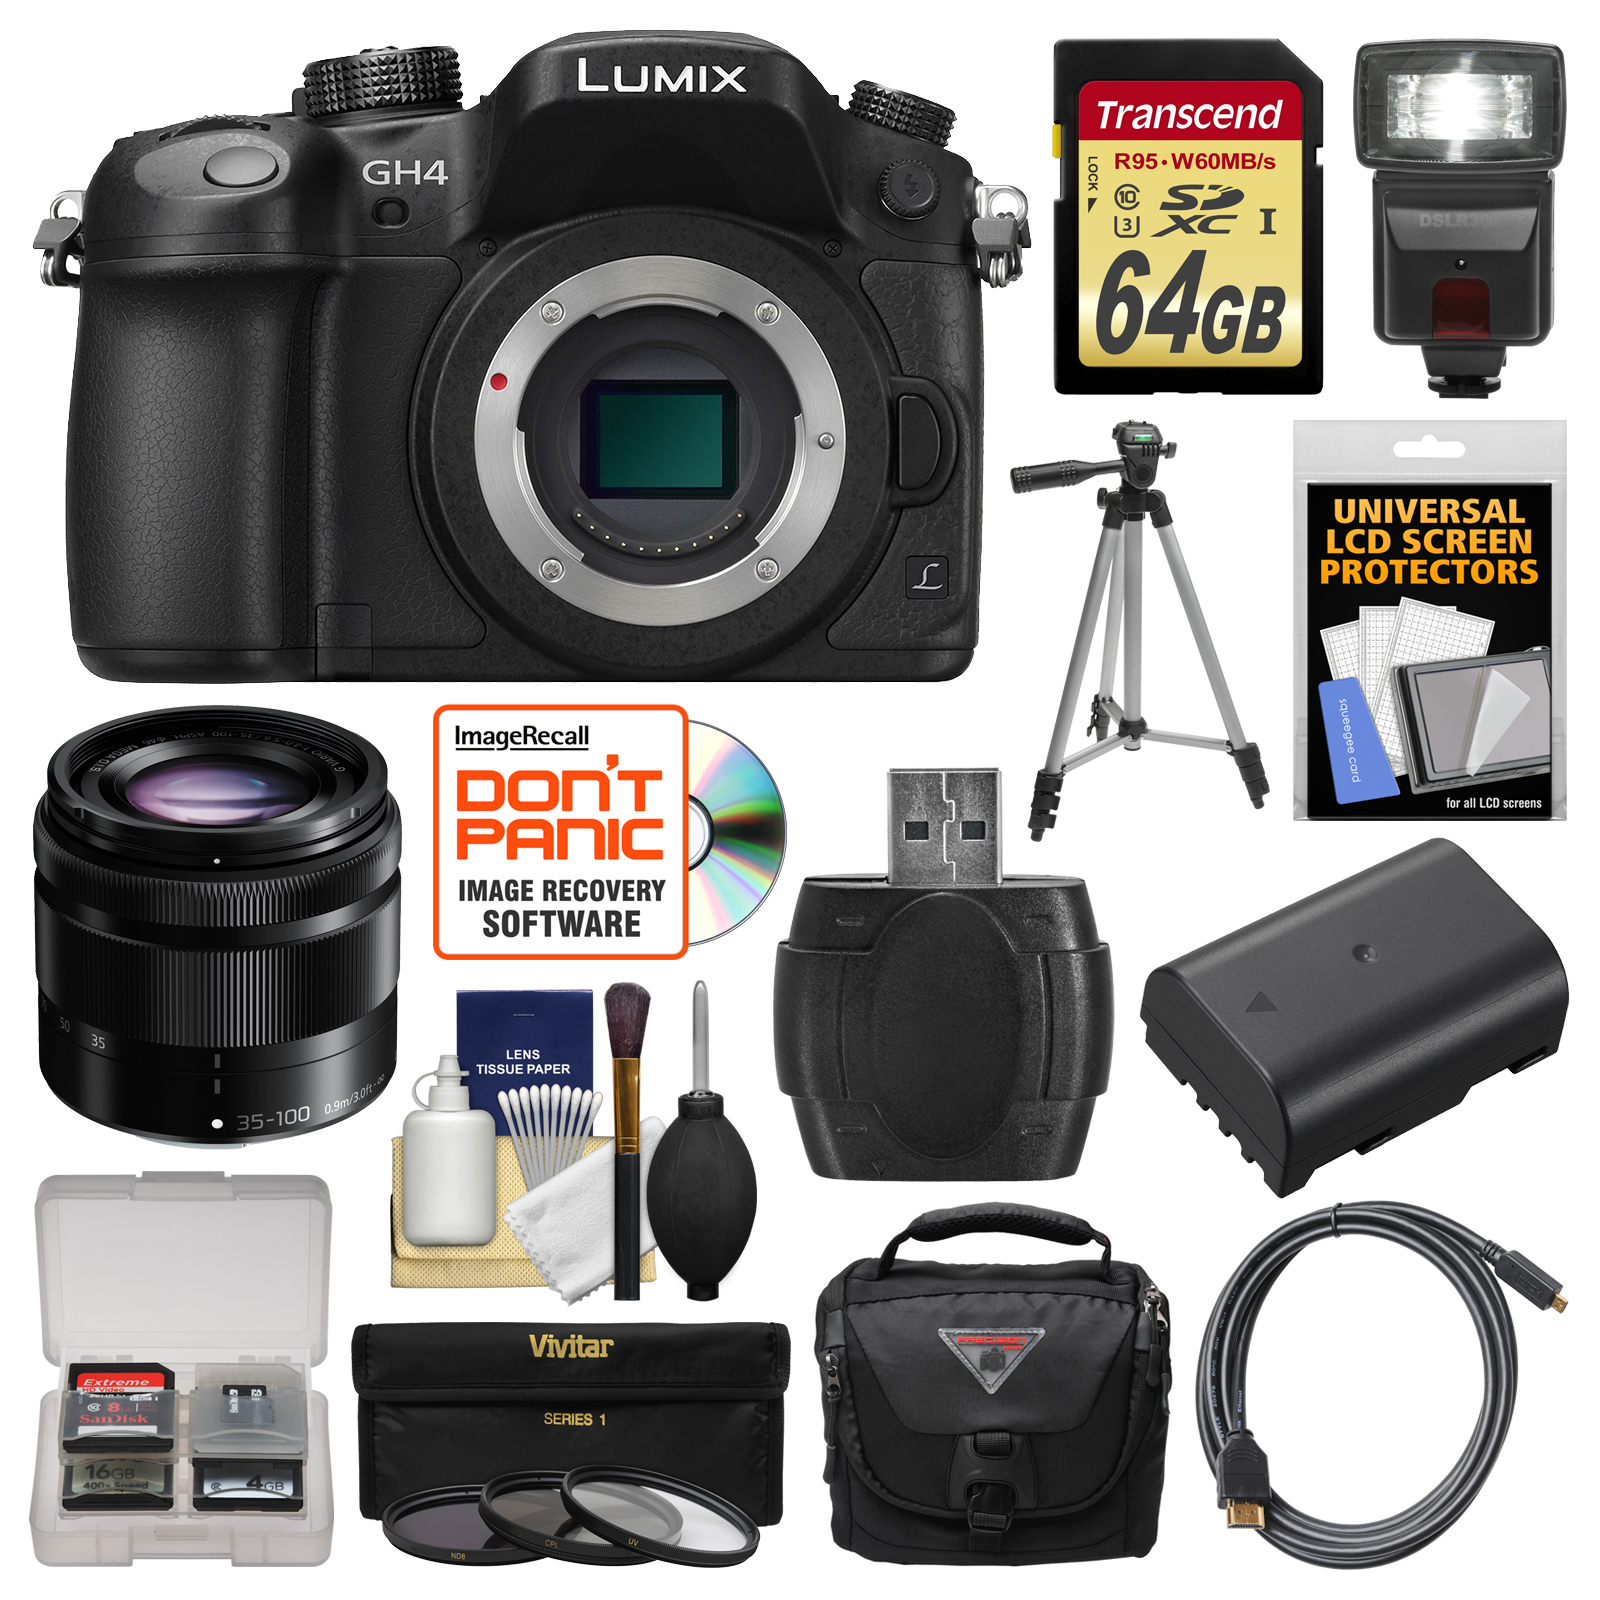 Panasonic Lumix DMC-GH4 4K Micro Four Thirds Digital Camera Body with 35-100mm Lens + 64GB Card + Case + Flash + Battery + Tripod + Filters Kit